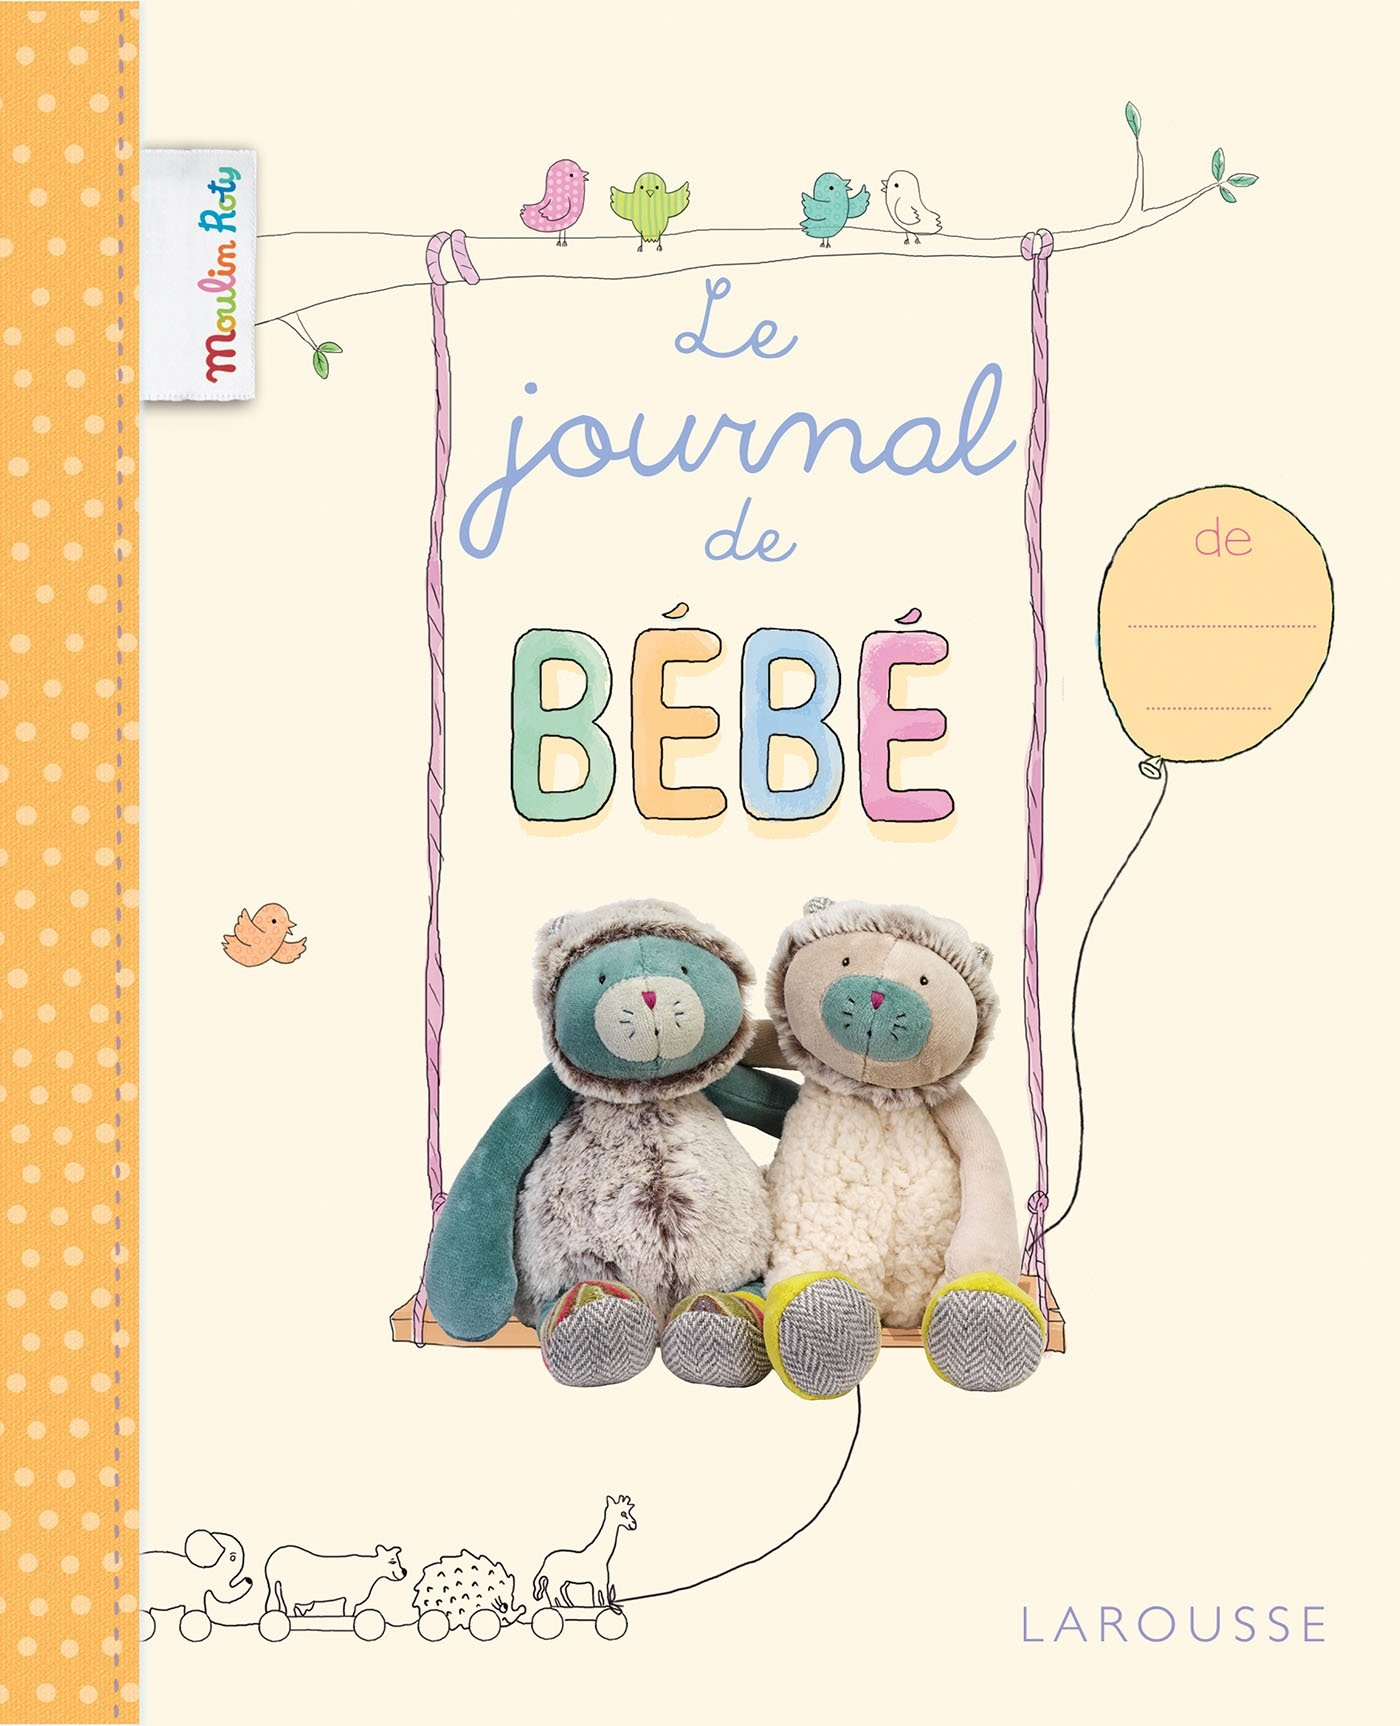 Le journal de mon bébé (Moulin Roty): Amazon.es: Alain Boyer ...